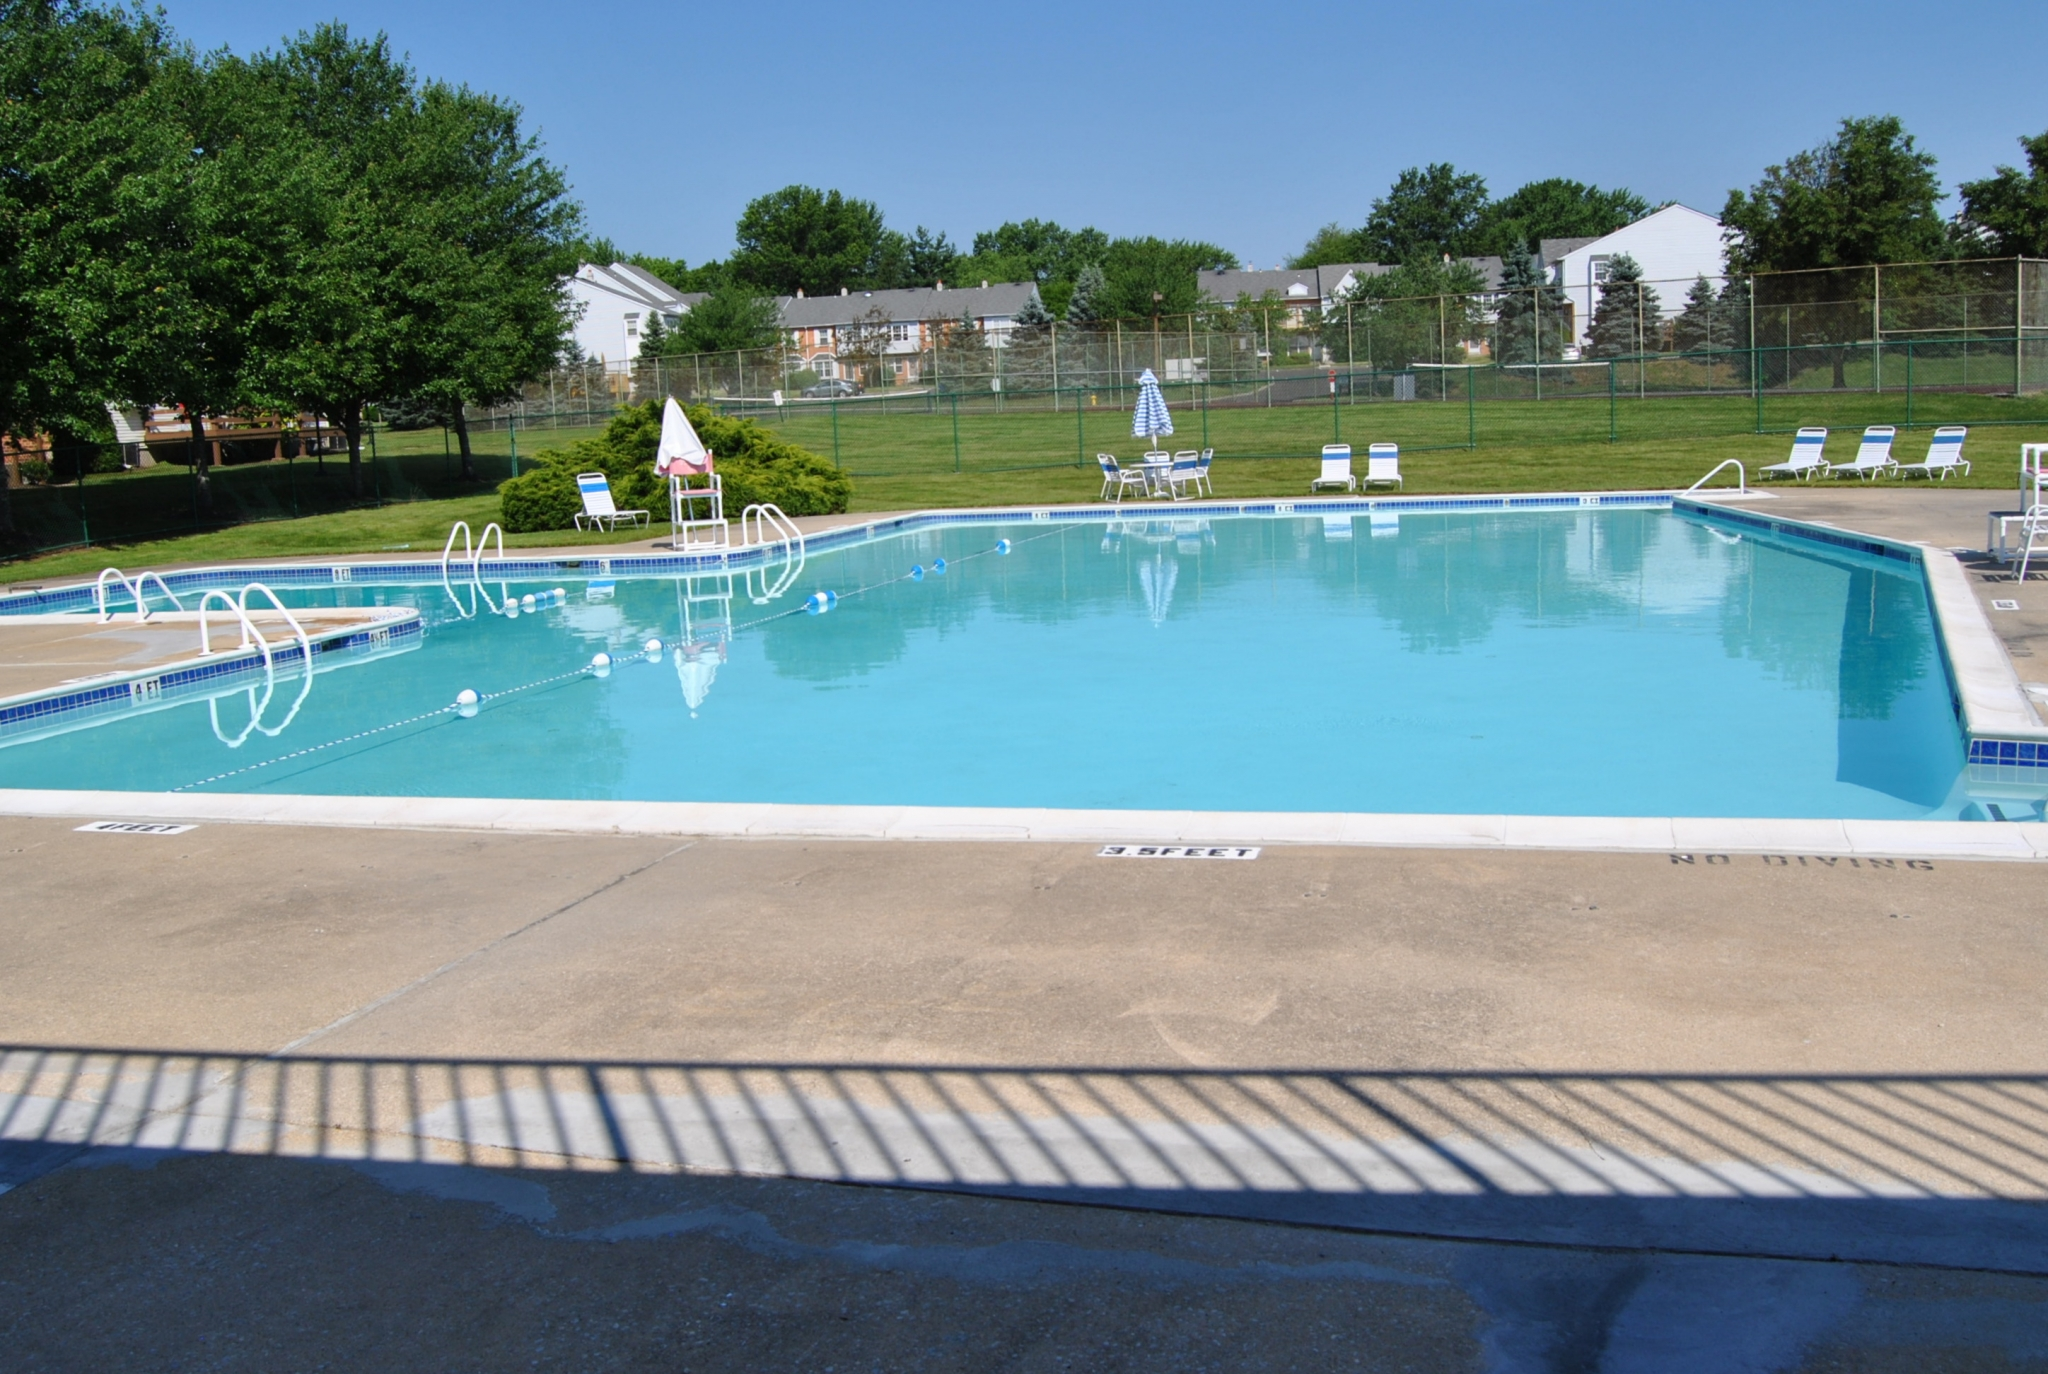 Westover Village Swimming Pool with Tennis Court in Back | Apartments near Norristown, PA